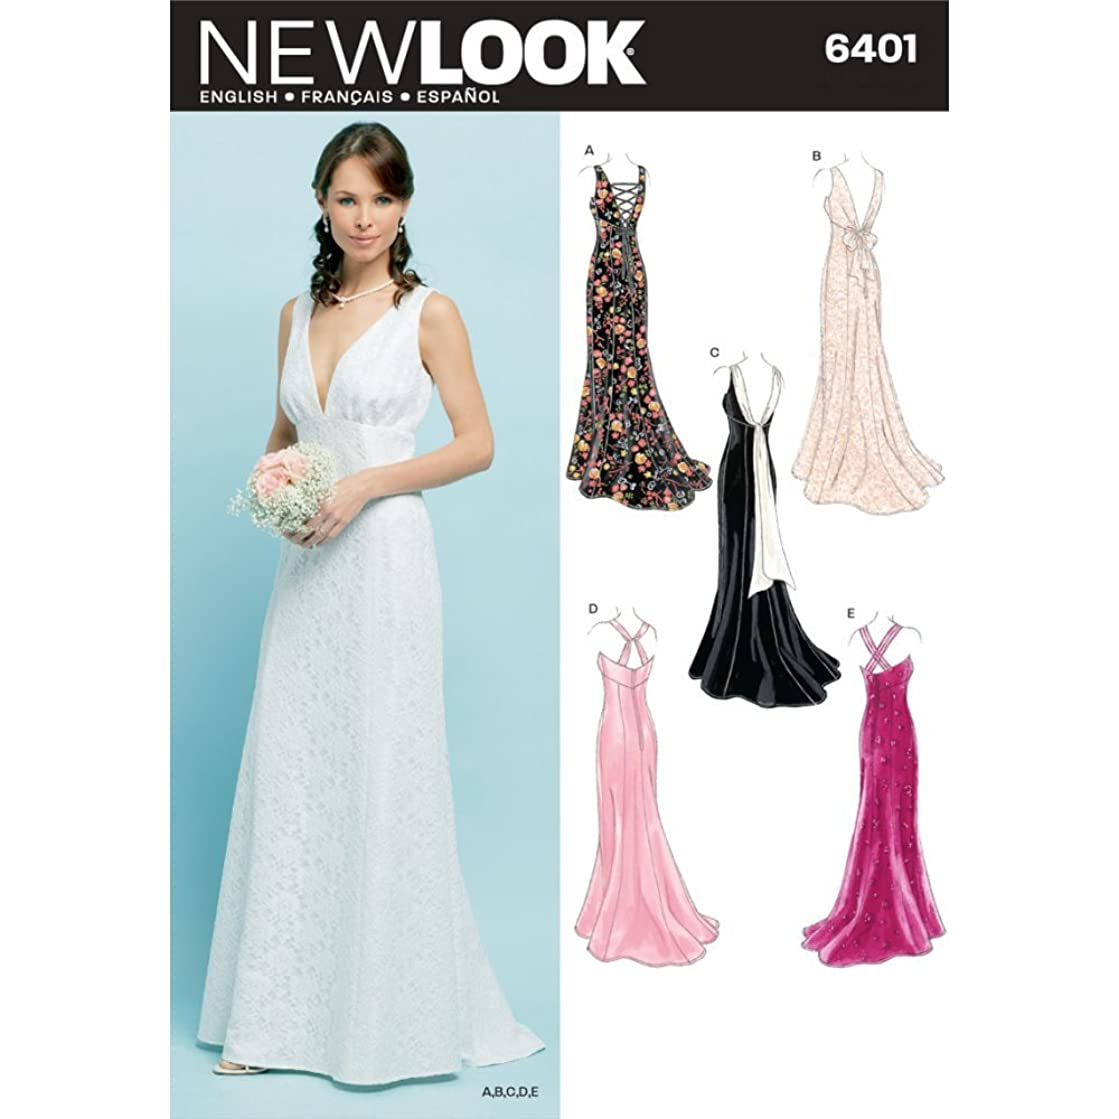 New Look Sewing Pattern 6401 Misses Special Occasion Dresses, Size A (8-10-12-14-16-18)